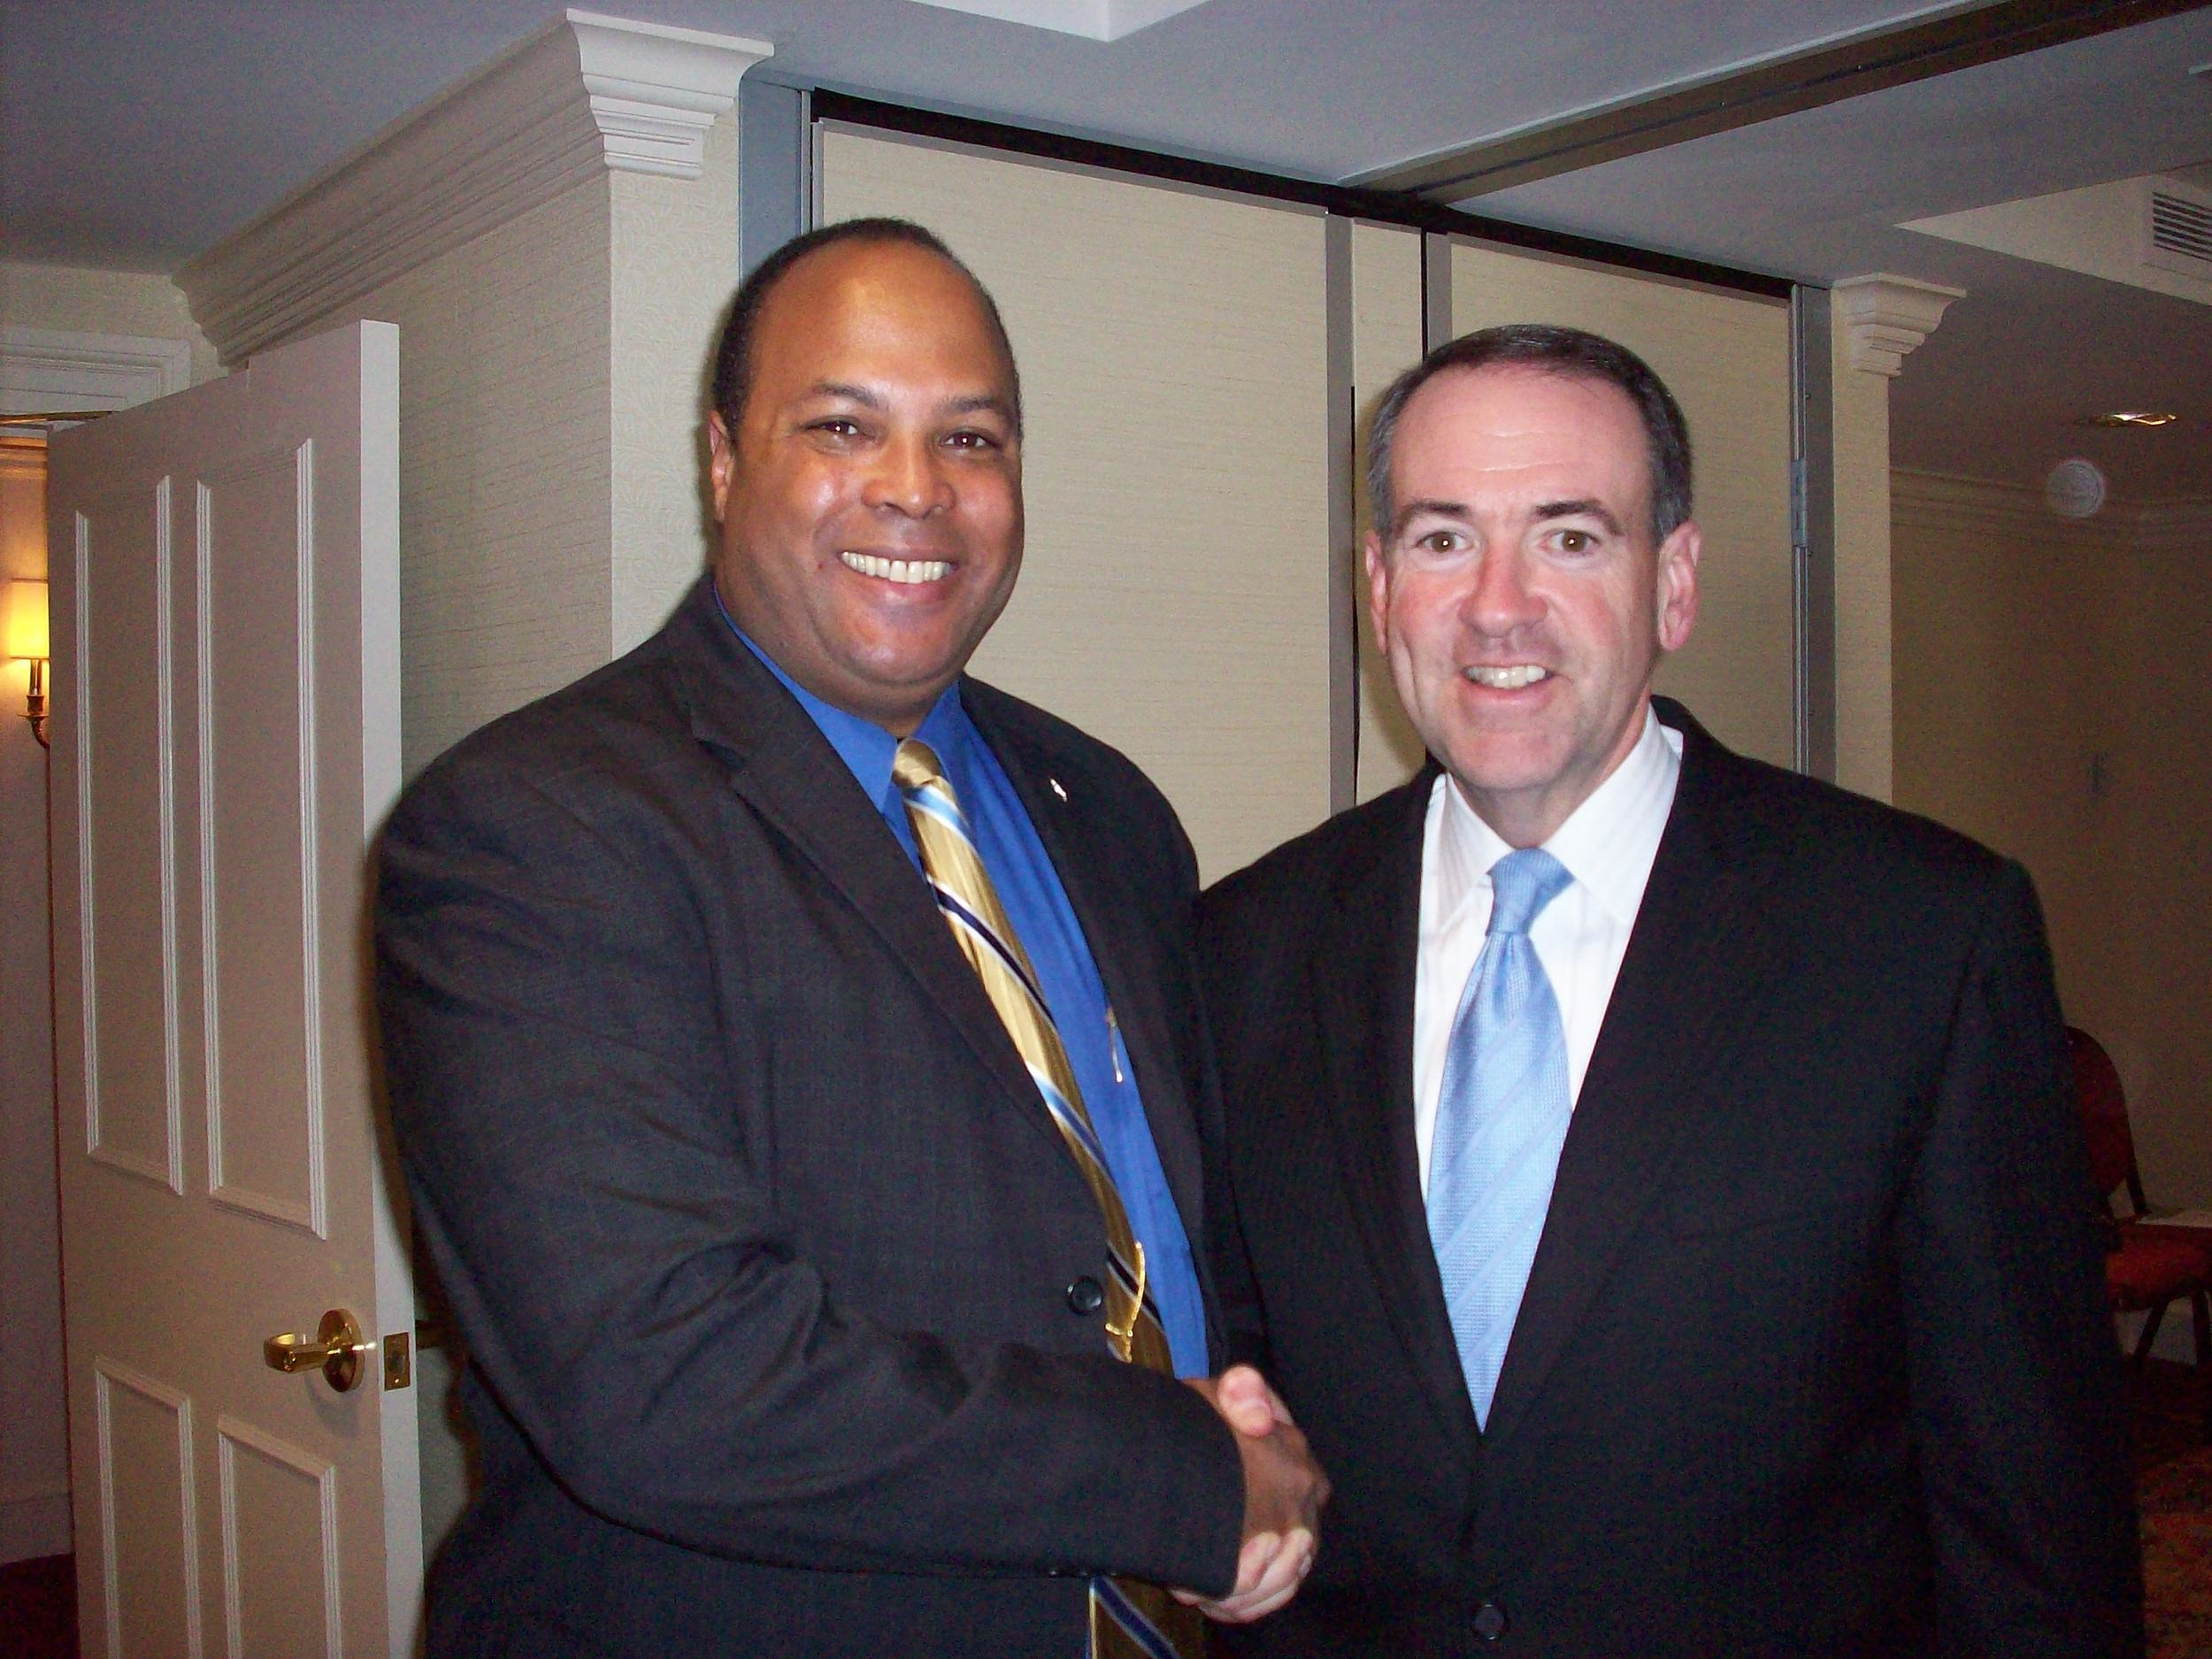 capitol-hill-club-fundraiser-huckabee-and-me.jpg